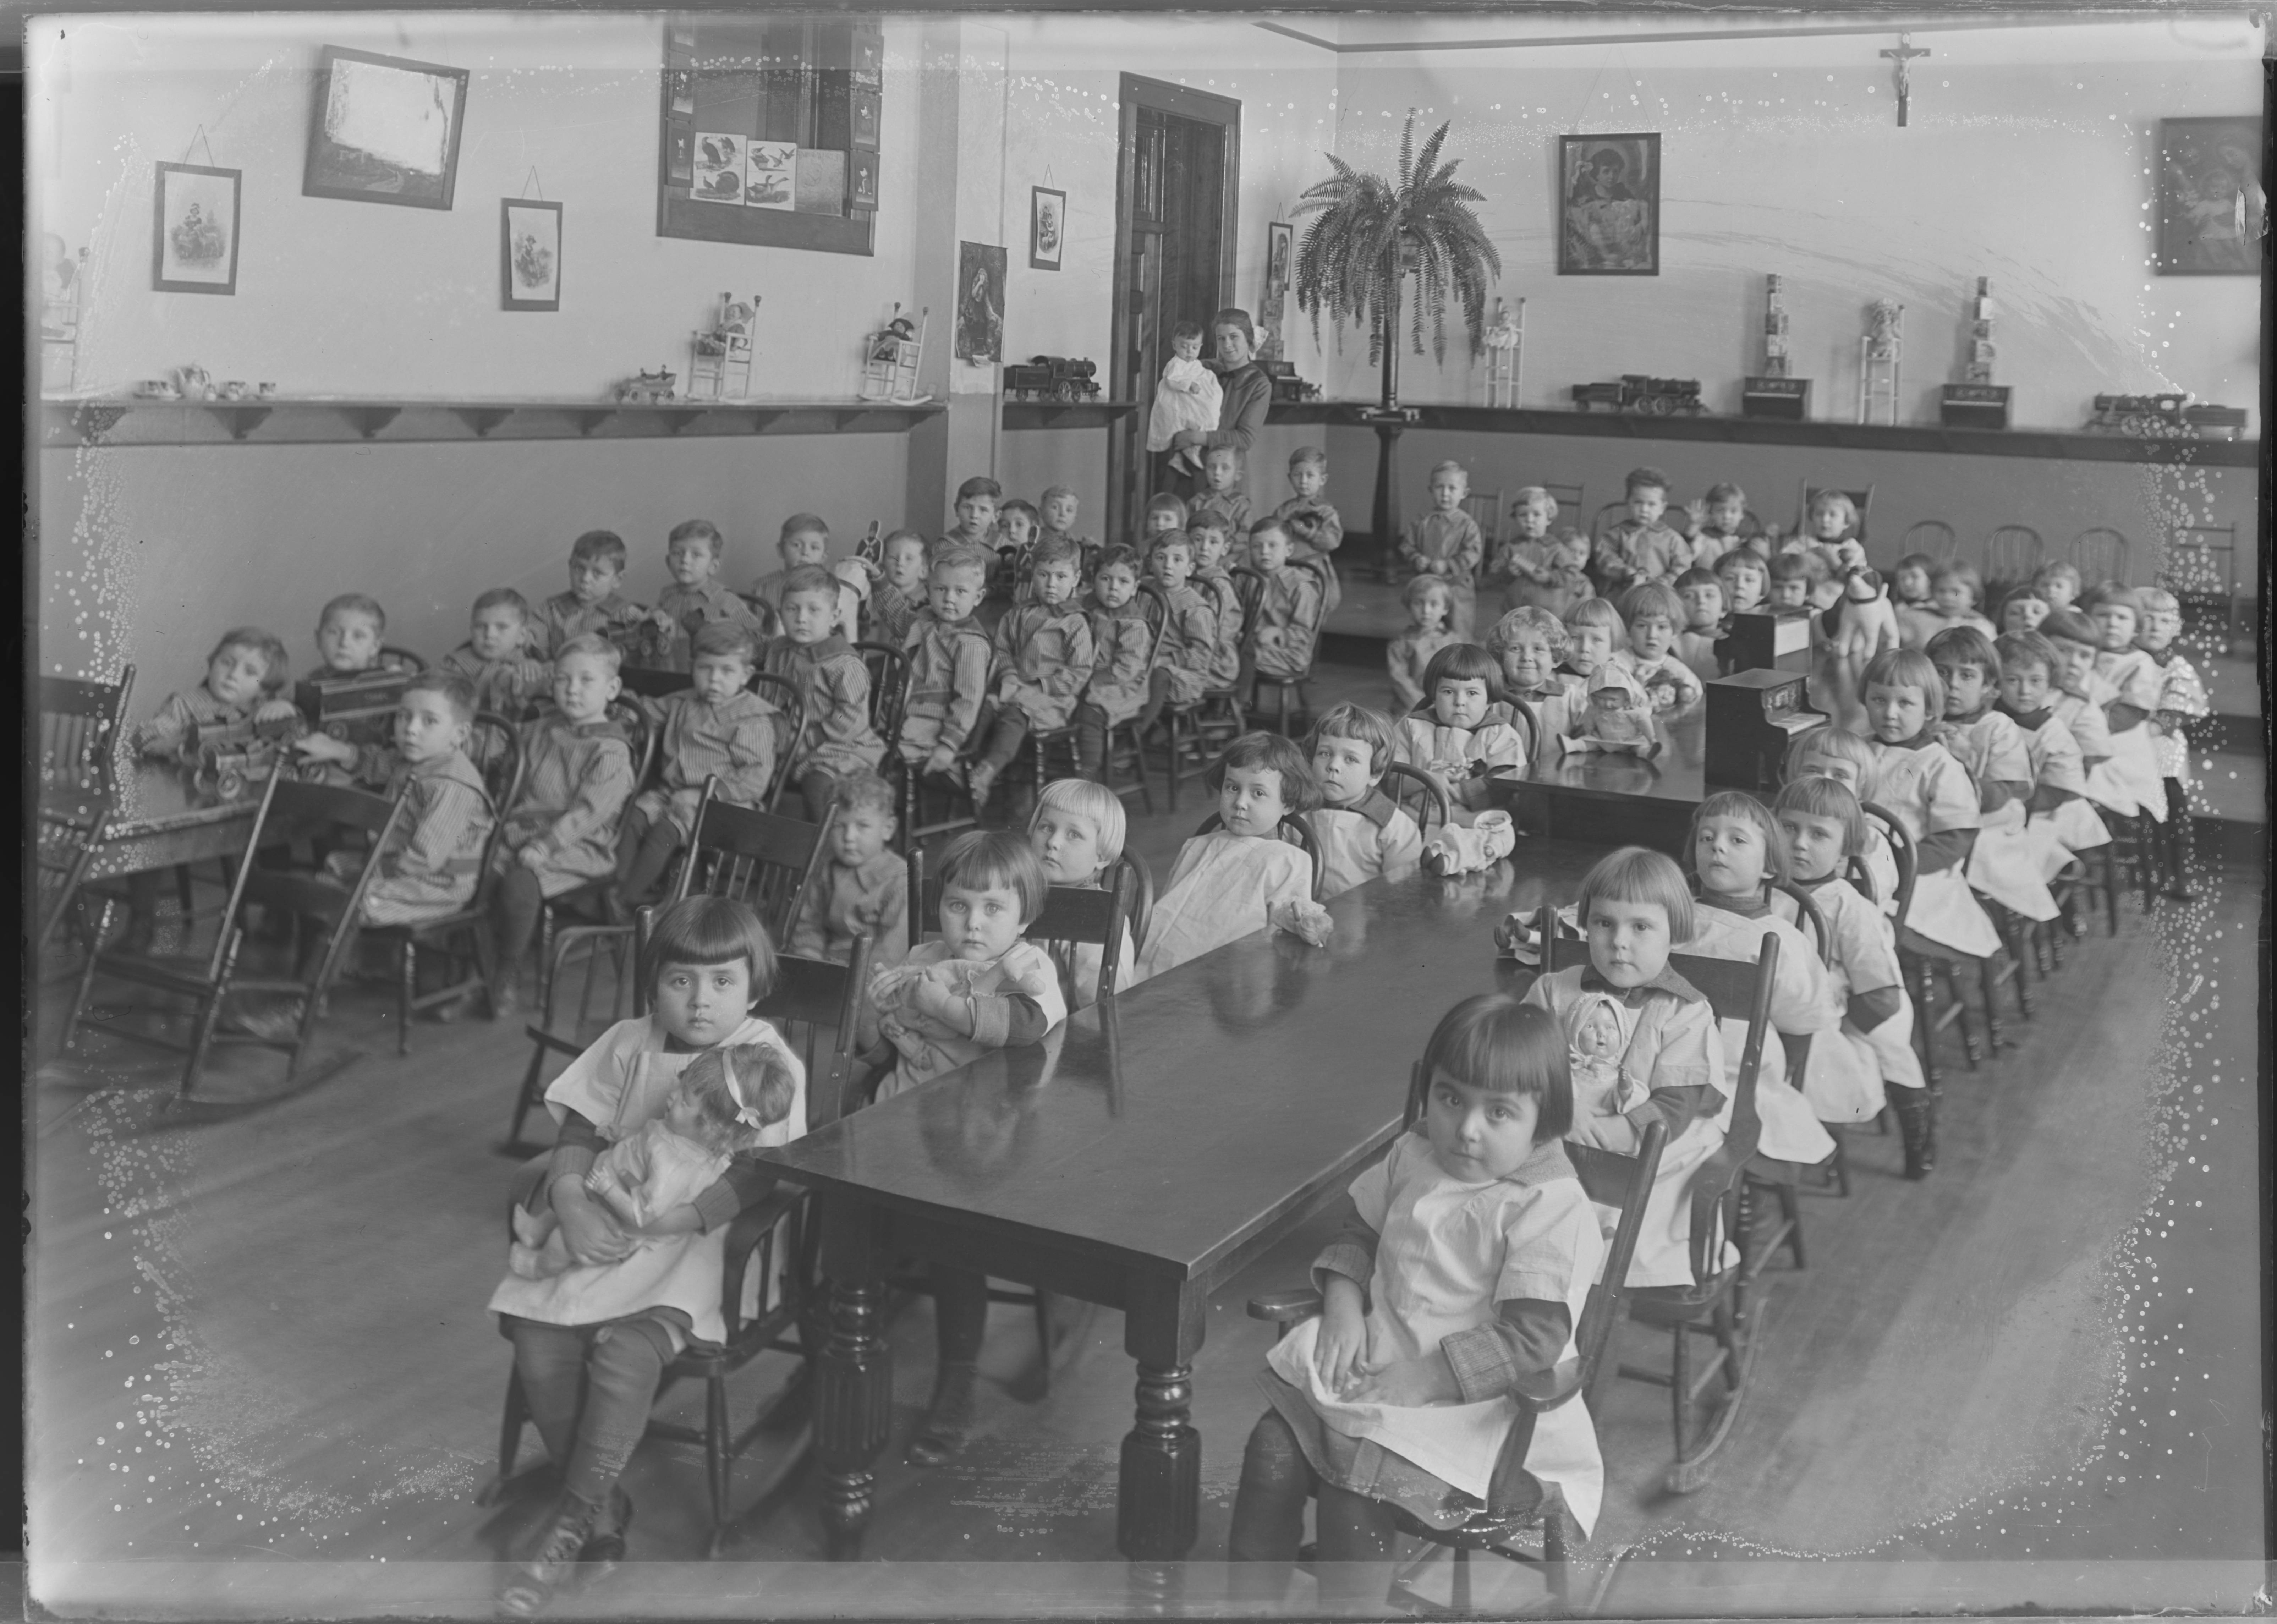 <table class=&quot;lightbox&quot;><tr><td colspan=2 class=&quot;lightbox-title&quot;>Children at St. Joseph's Orphanage</td></tr><tr><td colspan=2 class=&quot;lightbox-caption&quot;>Opened in 1908 to care for children in Milwaukee's growing Polish community, St. Joseph's Orphanage housed children between the ages of three and sixteen. </td></tr><tr><td colspan=2 class=&quot;lightbox-spacer&quot;></td></tr><tr class=&quot;lightbox-detail&quot;><td class=&quot;cell-title&quot;>Source: </td><td class=&quot;cell-value&quot;>From the Roman B. Kwaniewski Photographs Collection, Archives. University of Wisconsin-Milwaukee Libraries.<br /><a href=&quot;https://collections.lib.uwm.edu/digital/collection/mke-polonia/id/35789/rec/3685&quot; target=&quot;_blank&quot;>University of Wisconsin-Milwaukee Libraries</a></td></tr><tr class=&quot;filler-row&quot;><td colspan=2>&nbsp;</td></tr></table>